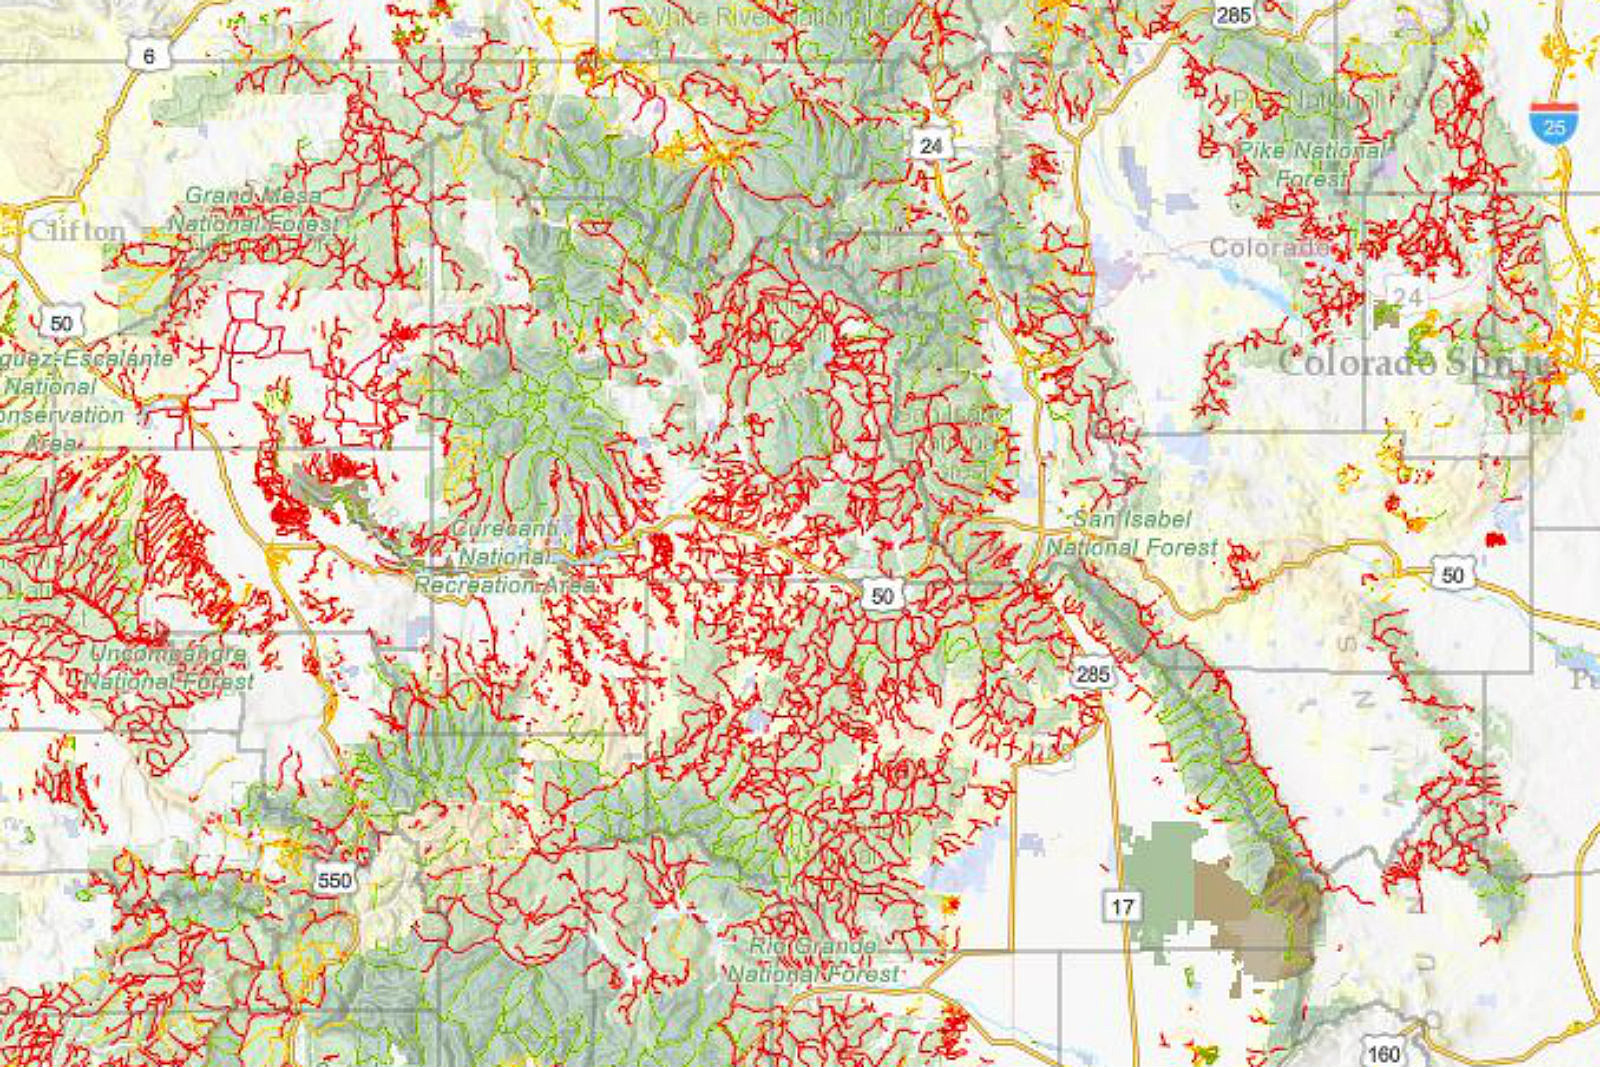 Rattlesnakes In Colorado Map.Amazing Map Shows 39 000 Miles Of Colorado Trails